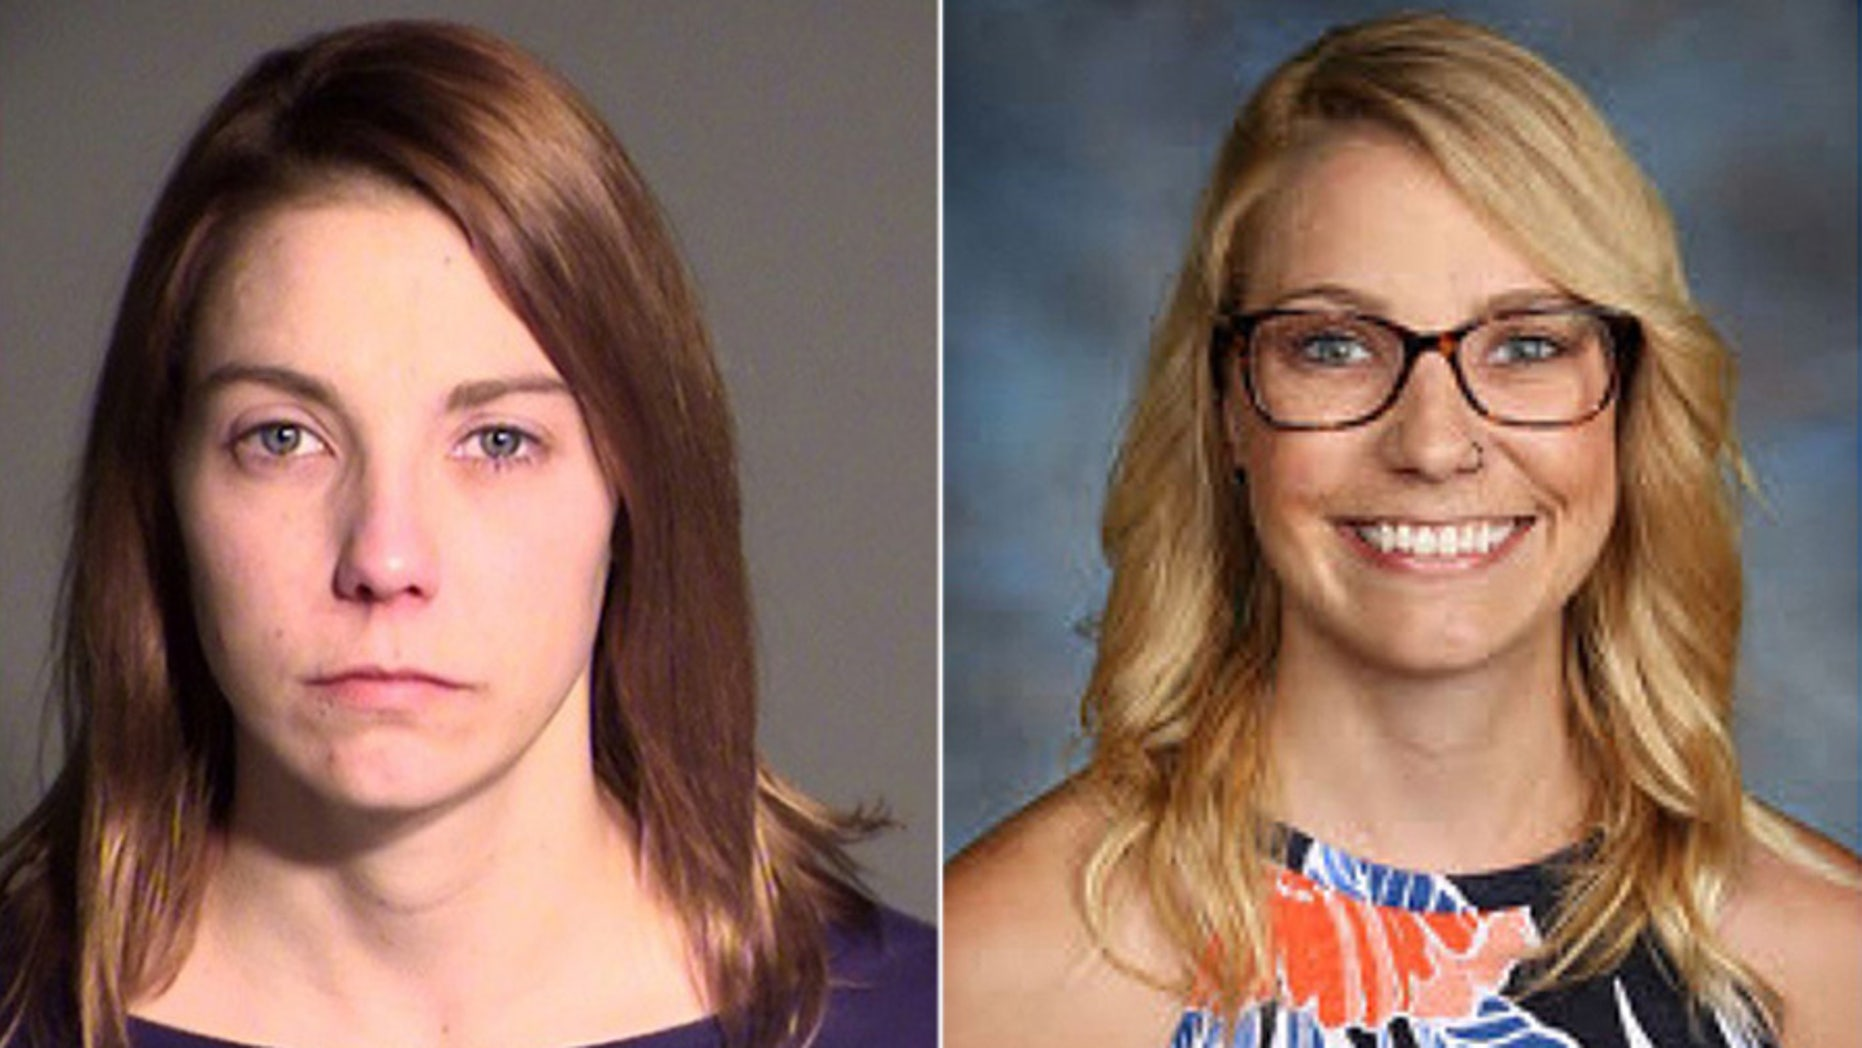 Hot female teacher arrested for sexual misconduct